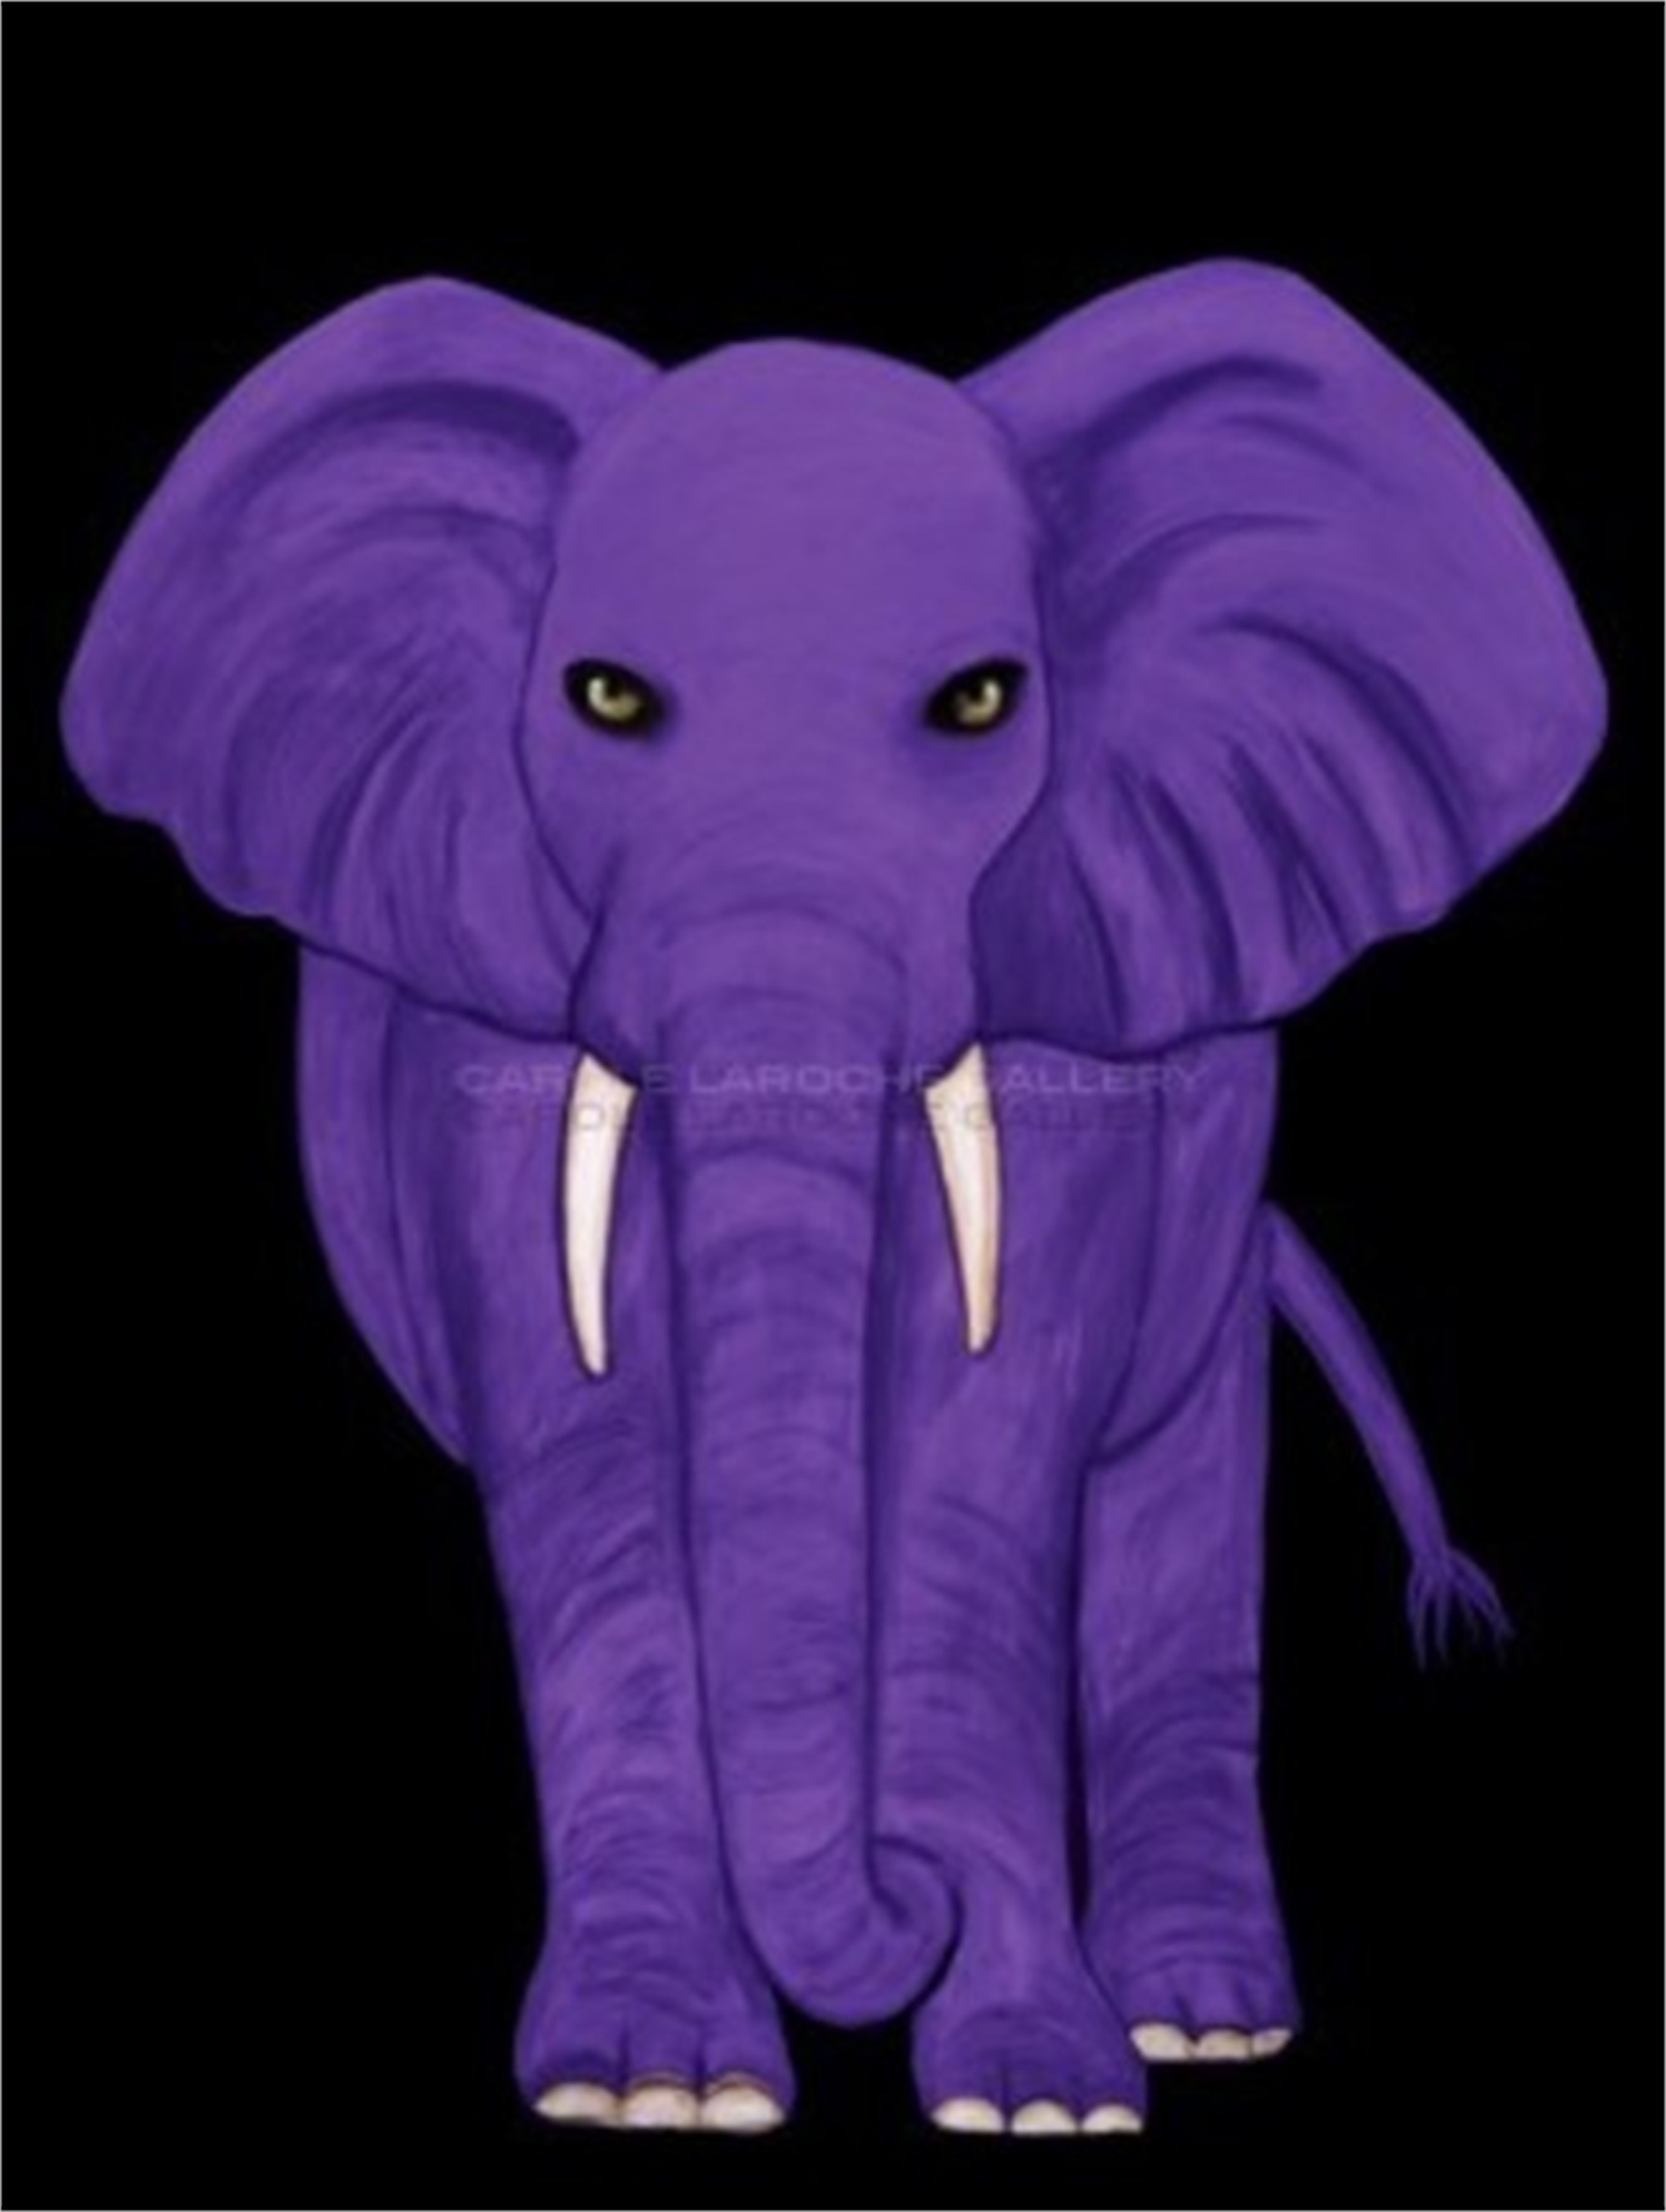 Purple Elephant by Carole LaRoche